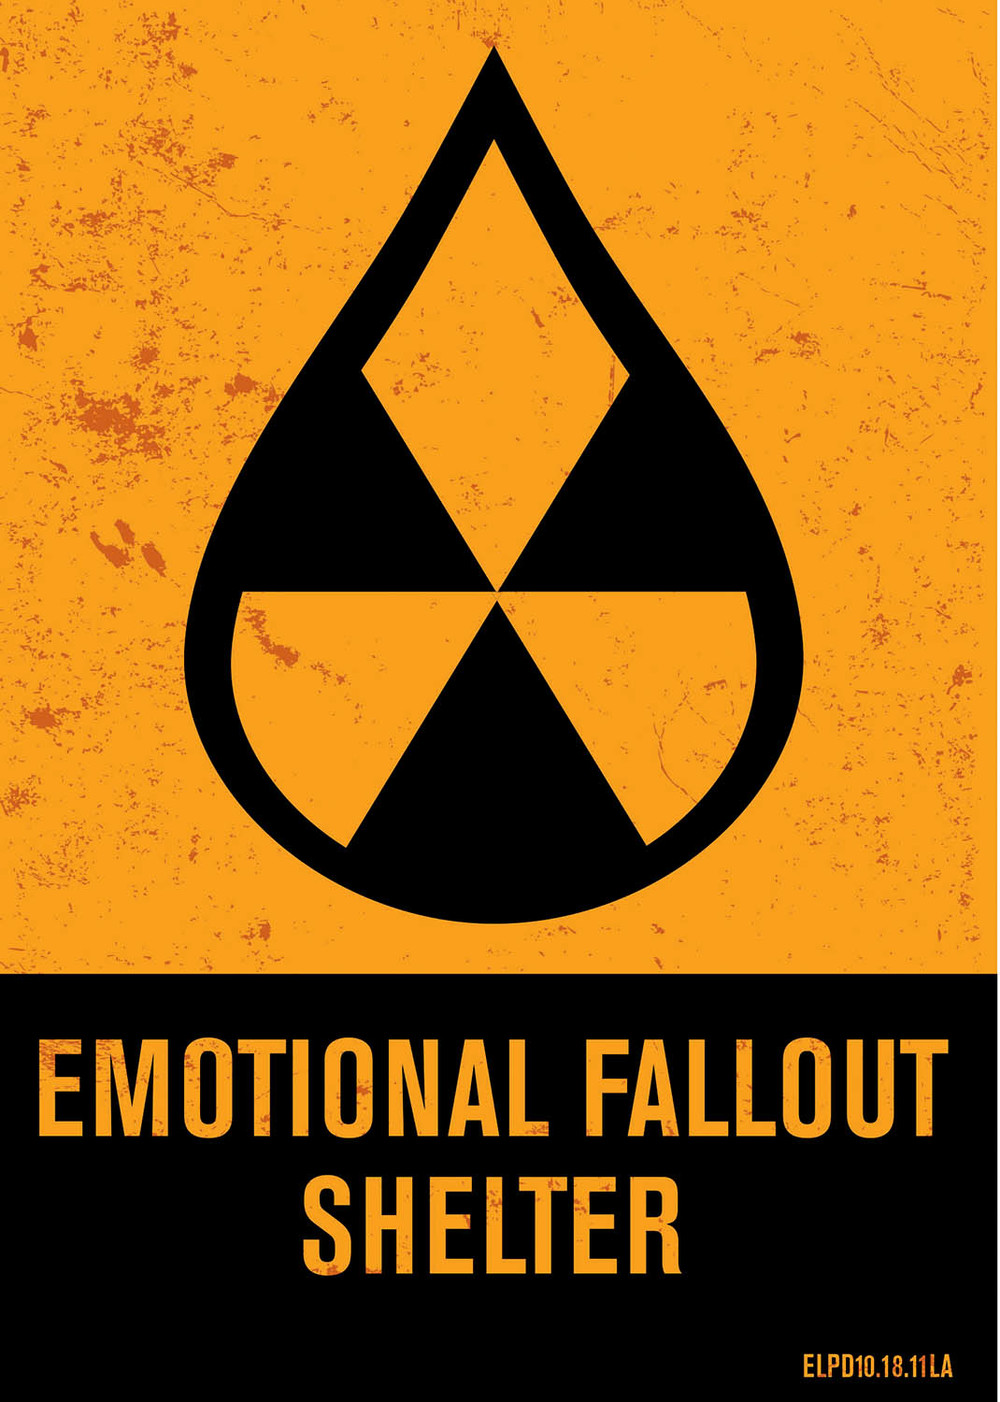 EMOTIONALfallout shelter sticker.jpg